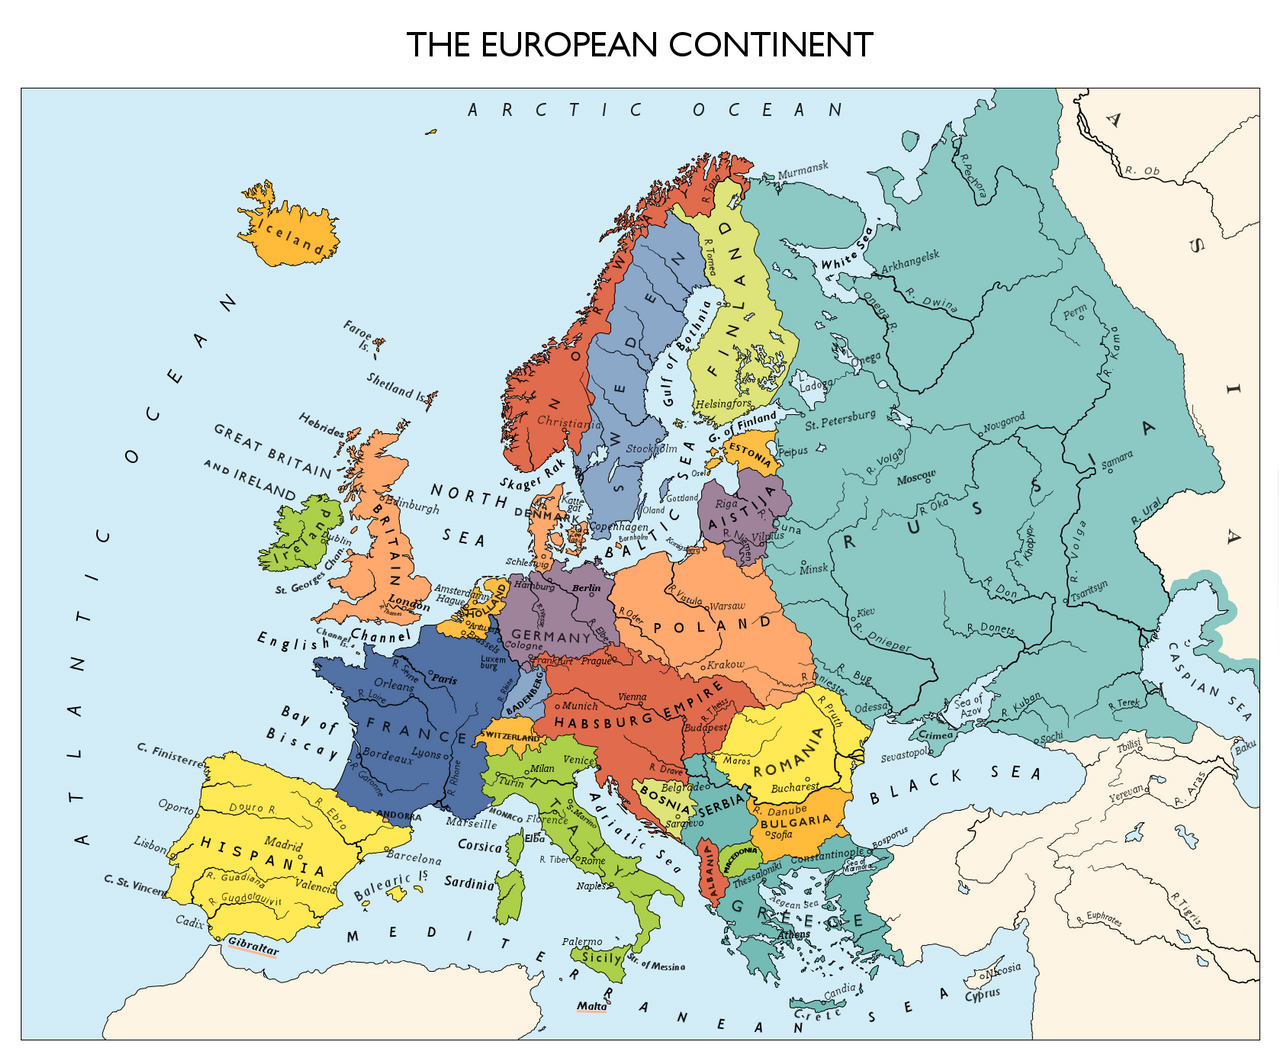 Commission Alternate Europe Map By Ynot1989 On Deviantart